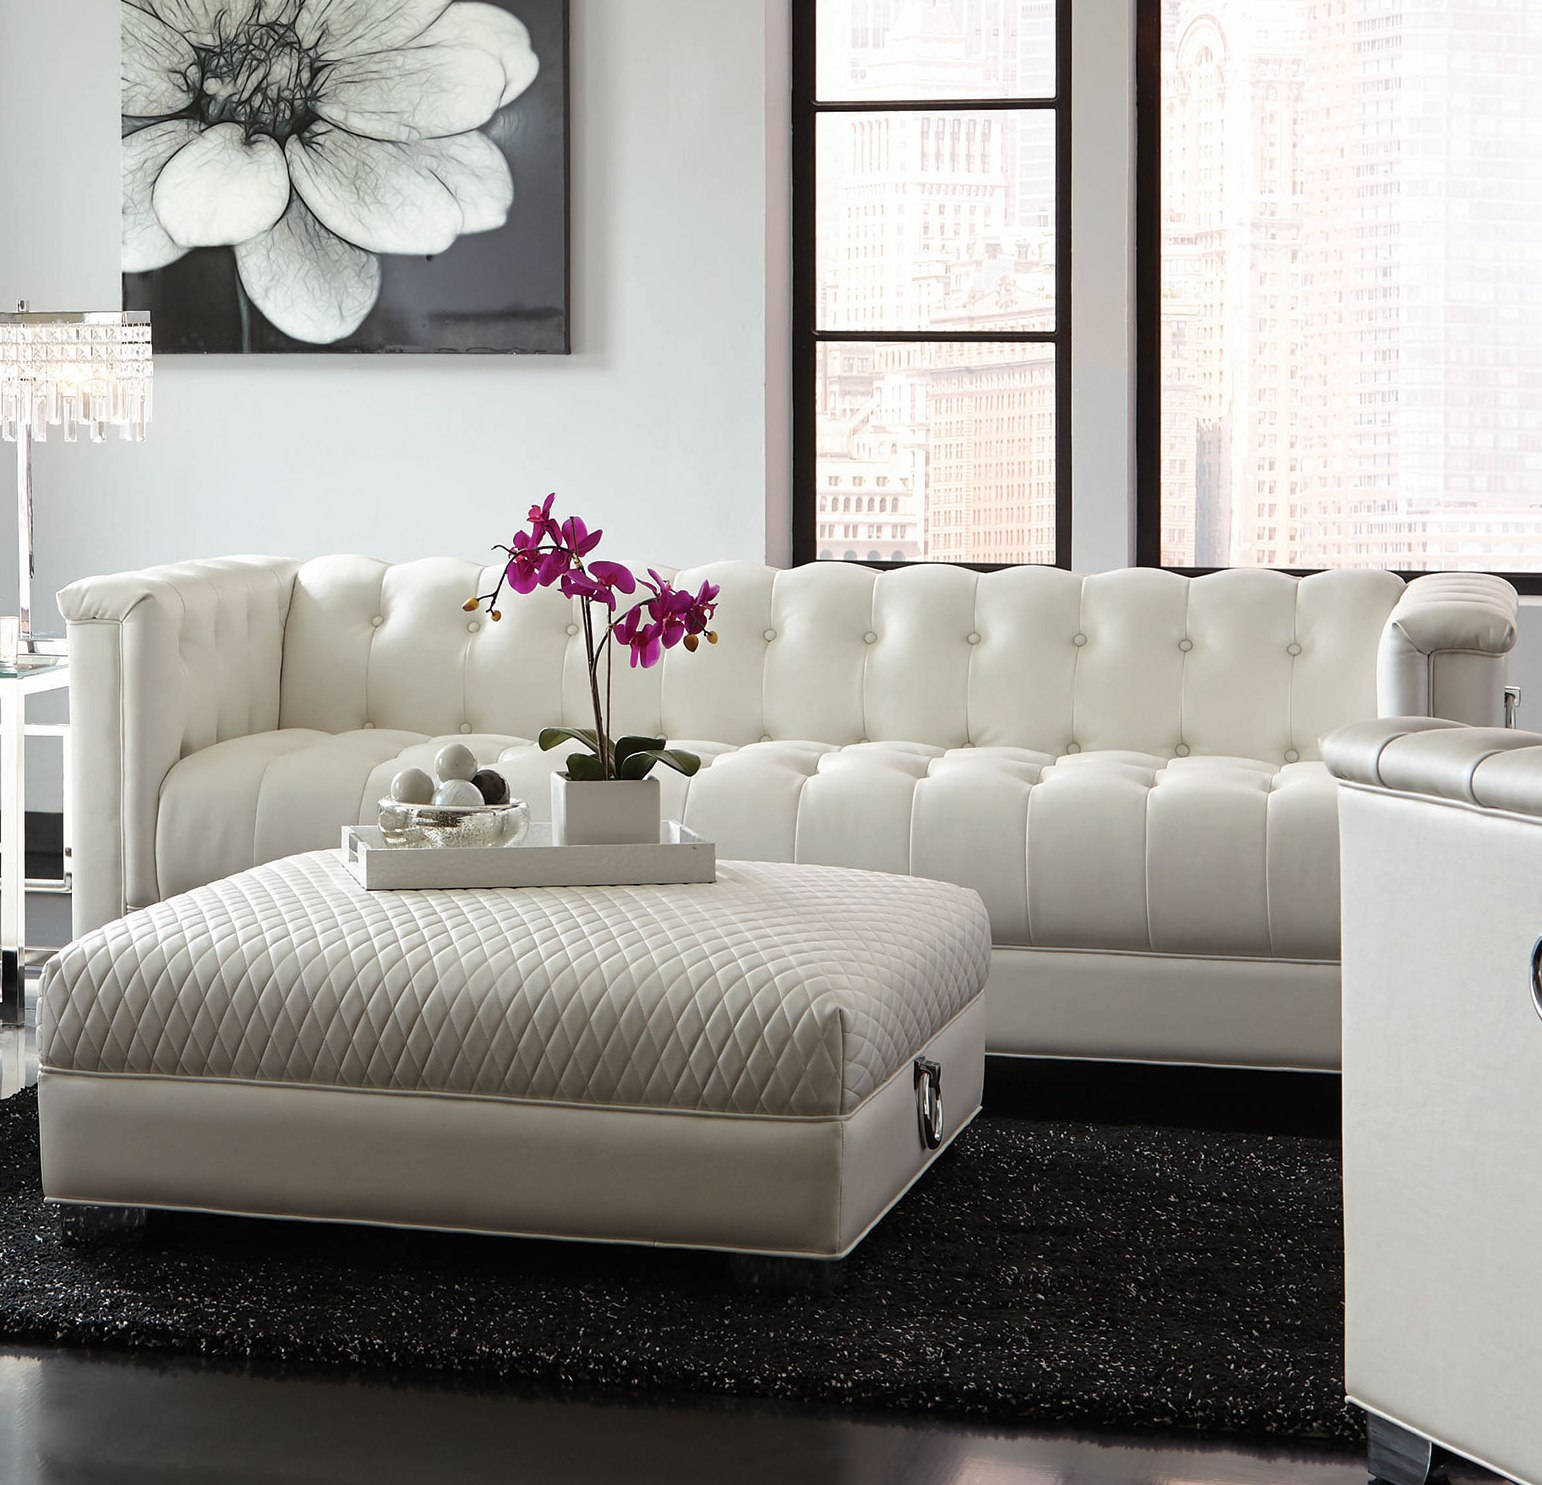 Coaster Furniture Chaviano White Tufted Sofa The Classy Home